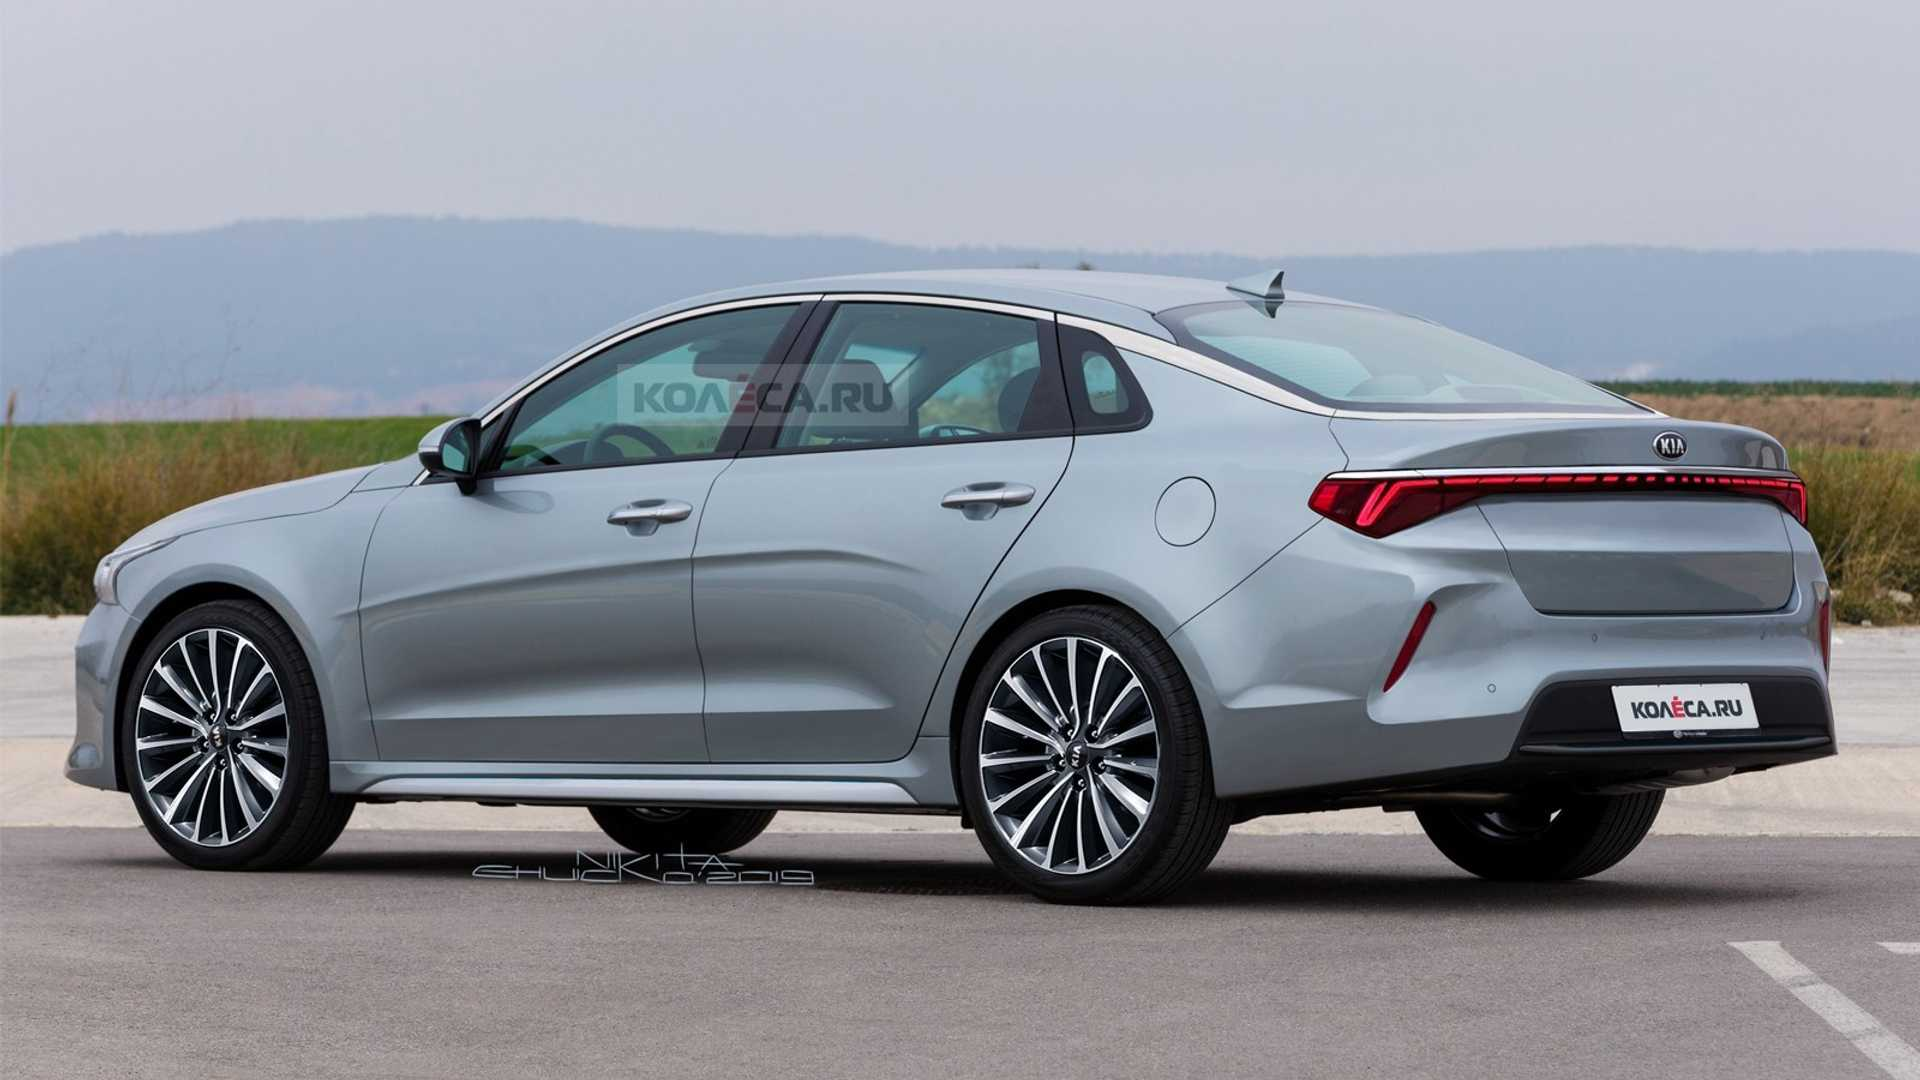 Renderings: Next Gen Kia Optima 2